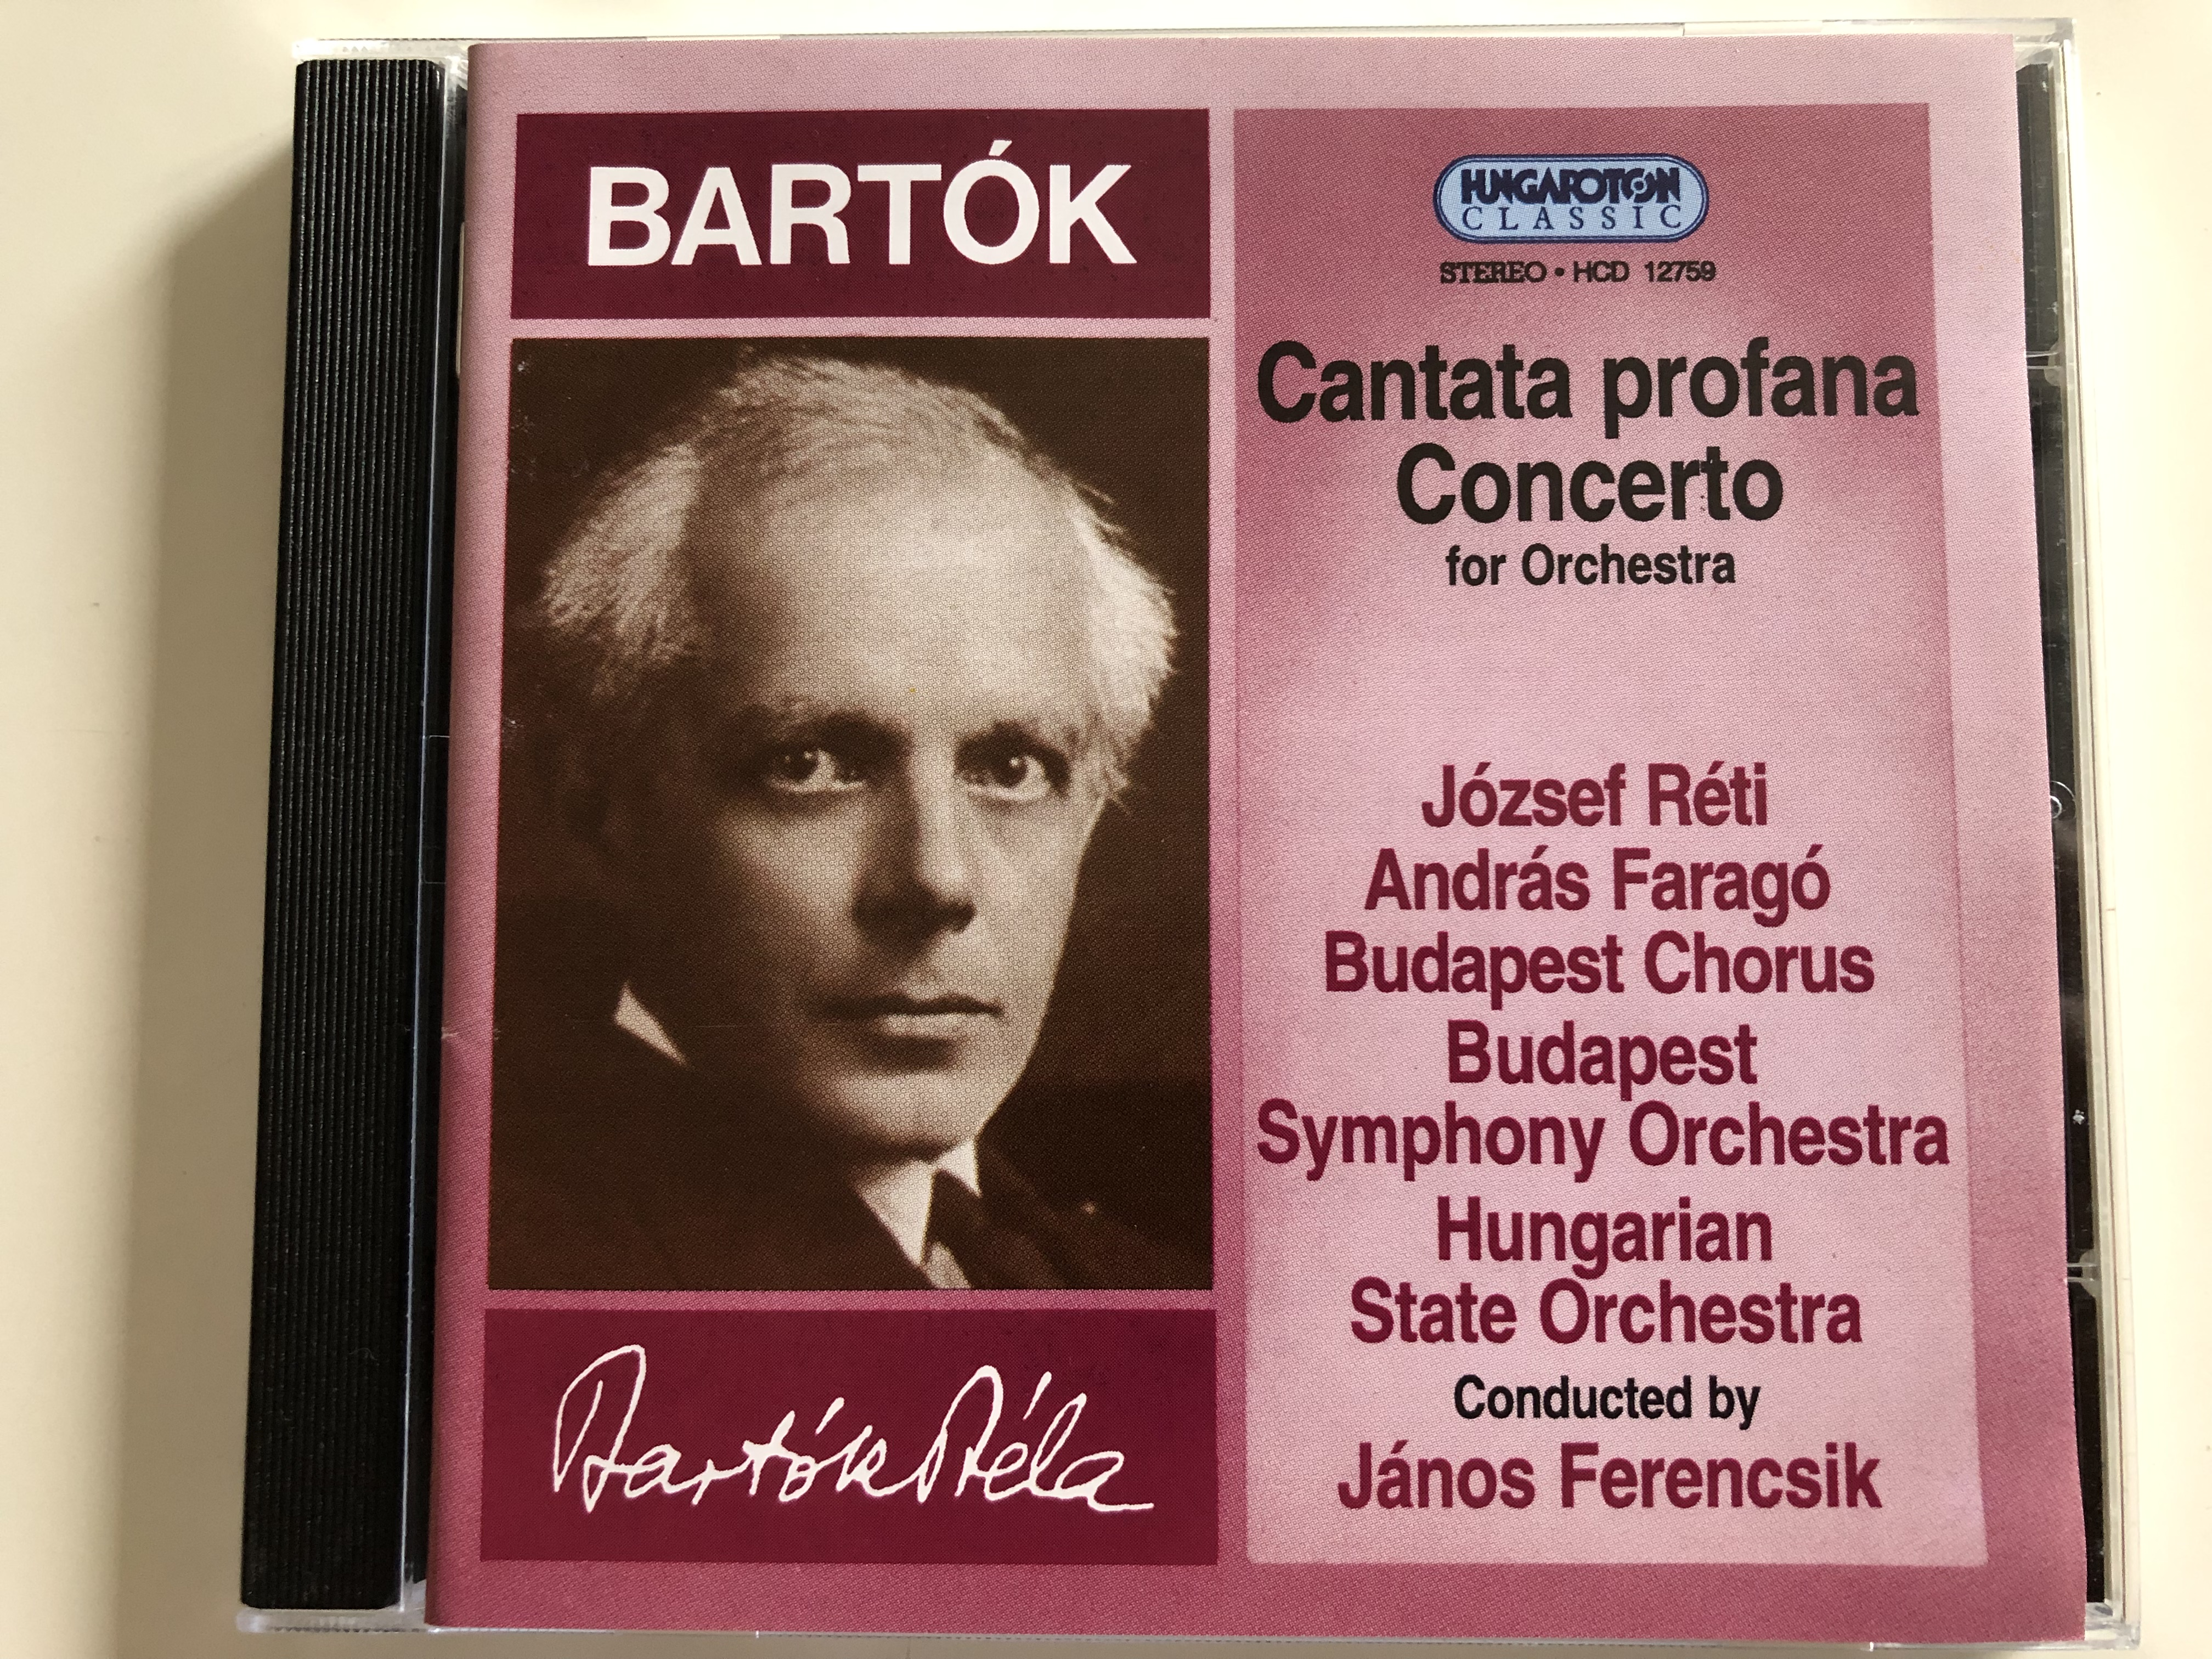 bart-k-cantata-profana-concerto-for-orchestra-j-zsef-r-ti-adr-s-farag-budapest-chorus-budapest-symphony-orchestra-hungarian-state-orchestra-1-.jpg